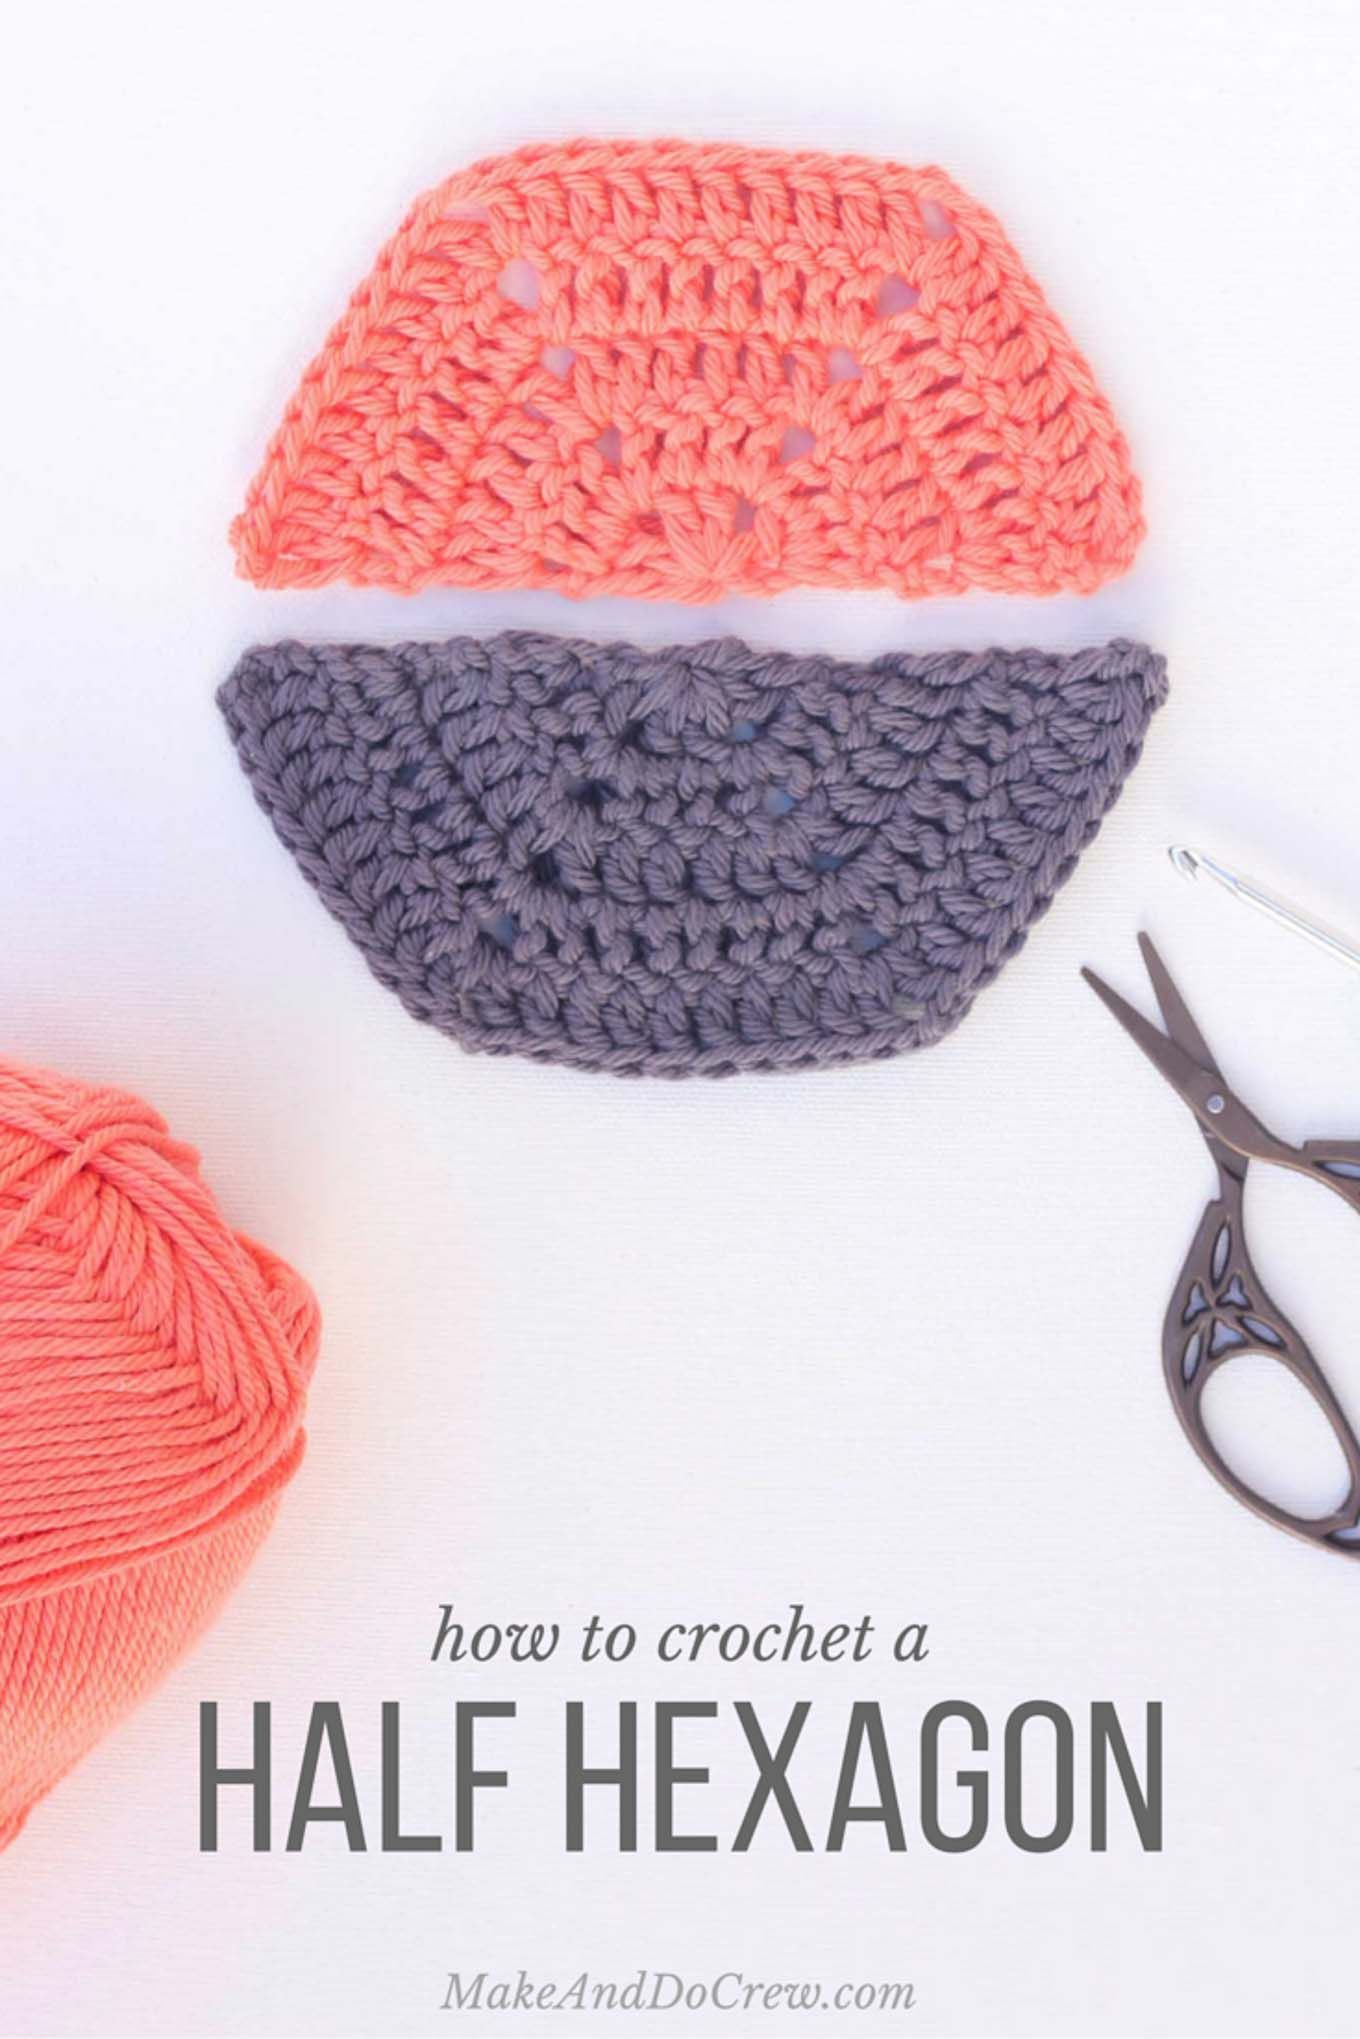 Tutorial: How to Crochet a Half Hexagon | crochet | Pinterest ...